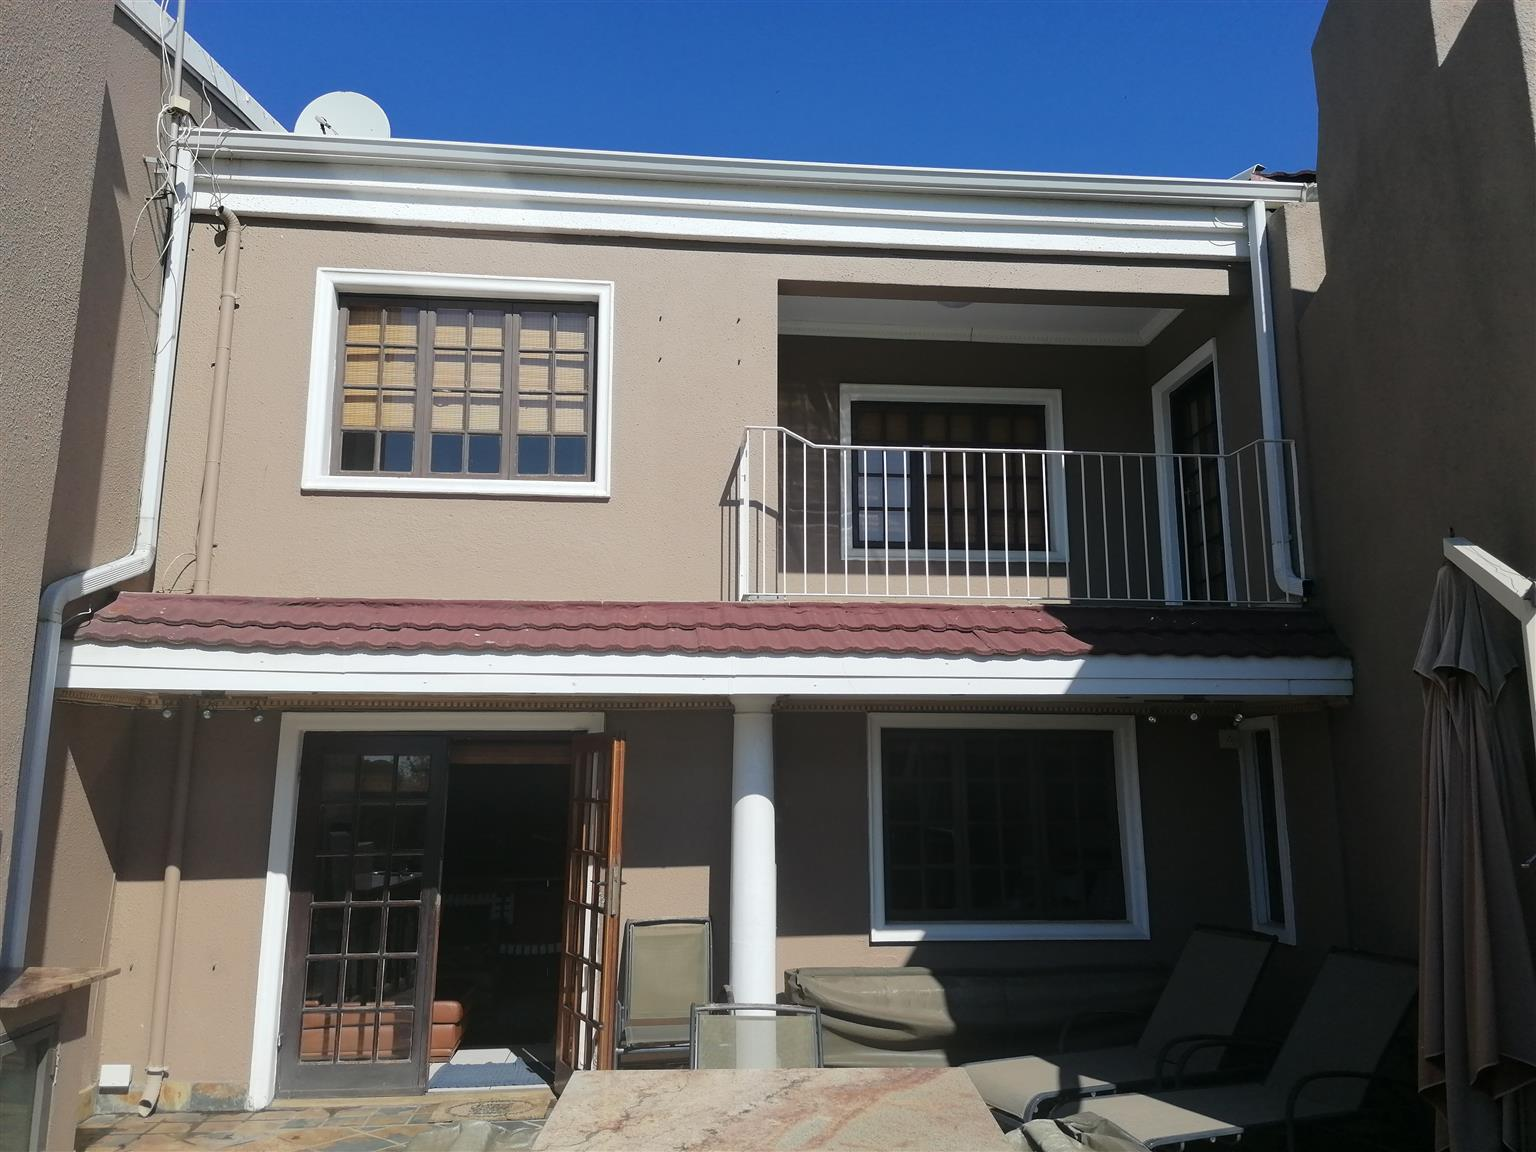 lovely 2,5 bedroom apartment on the shores of the vaal river in Vereeniging